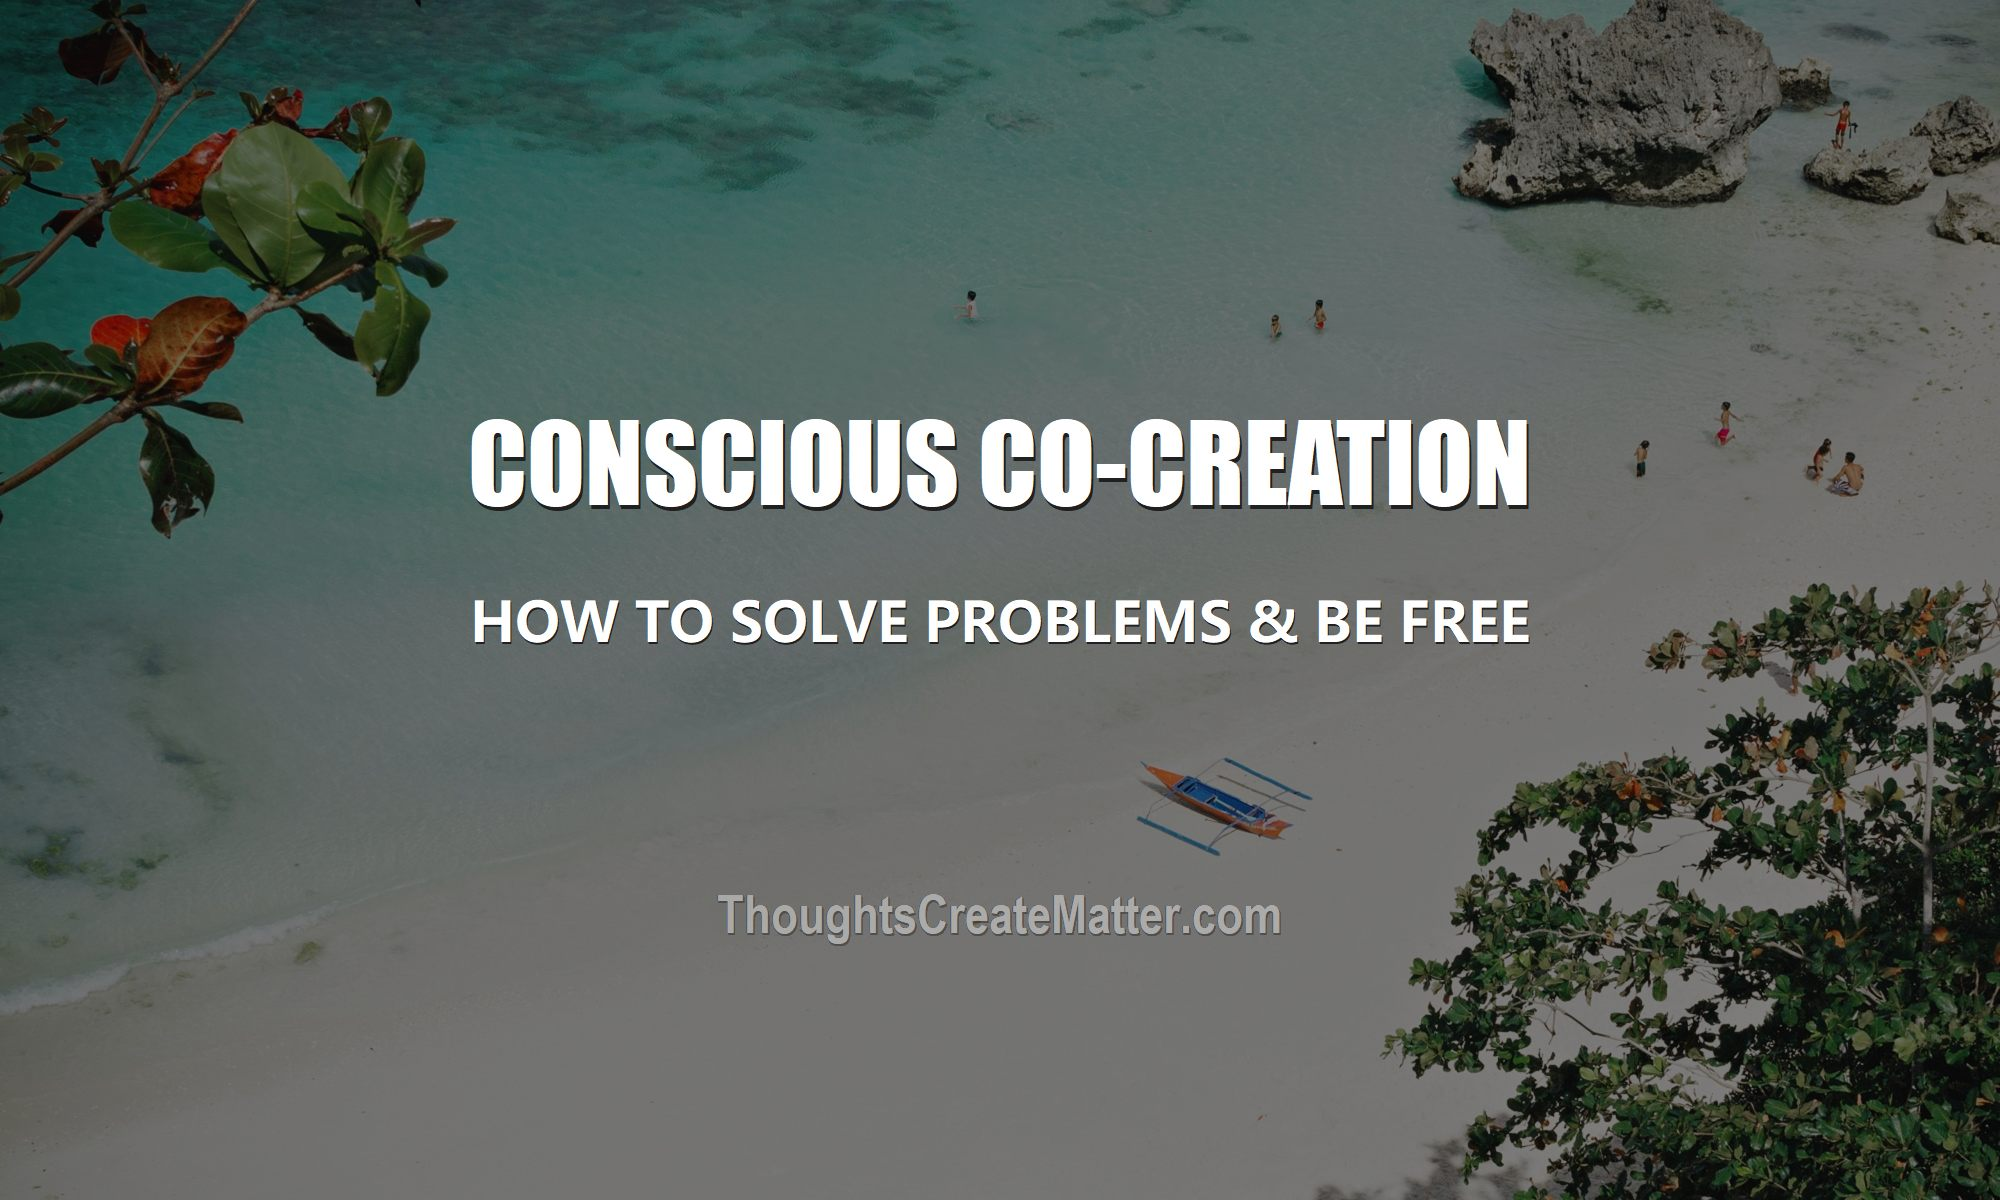 how-can-i-stop-solve-problem-end-be-free-of-unchanging-life-difficulty-suffering-limitations-conscious-co-creation-feature-image-beach